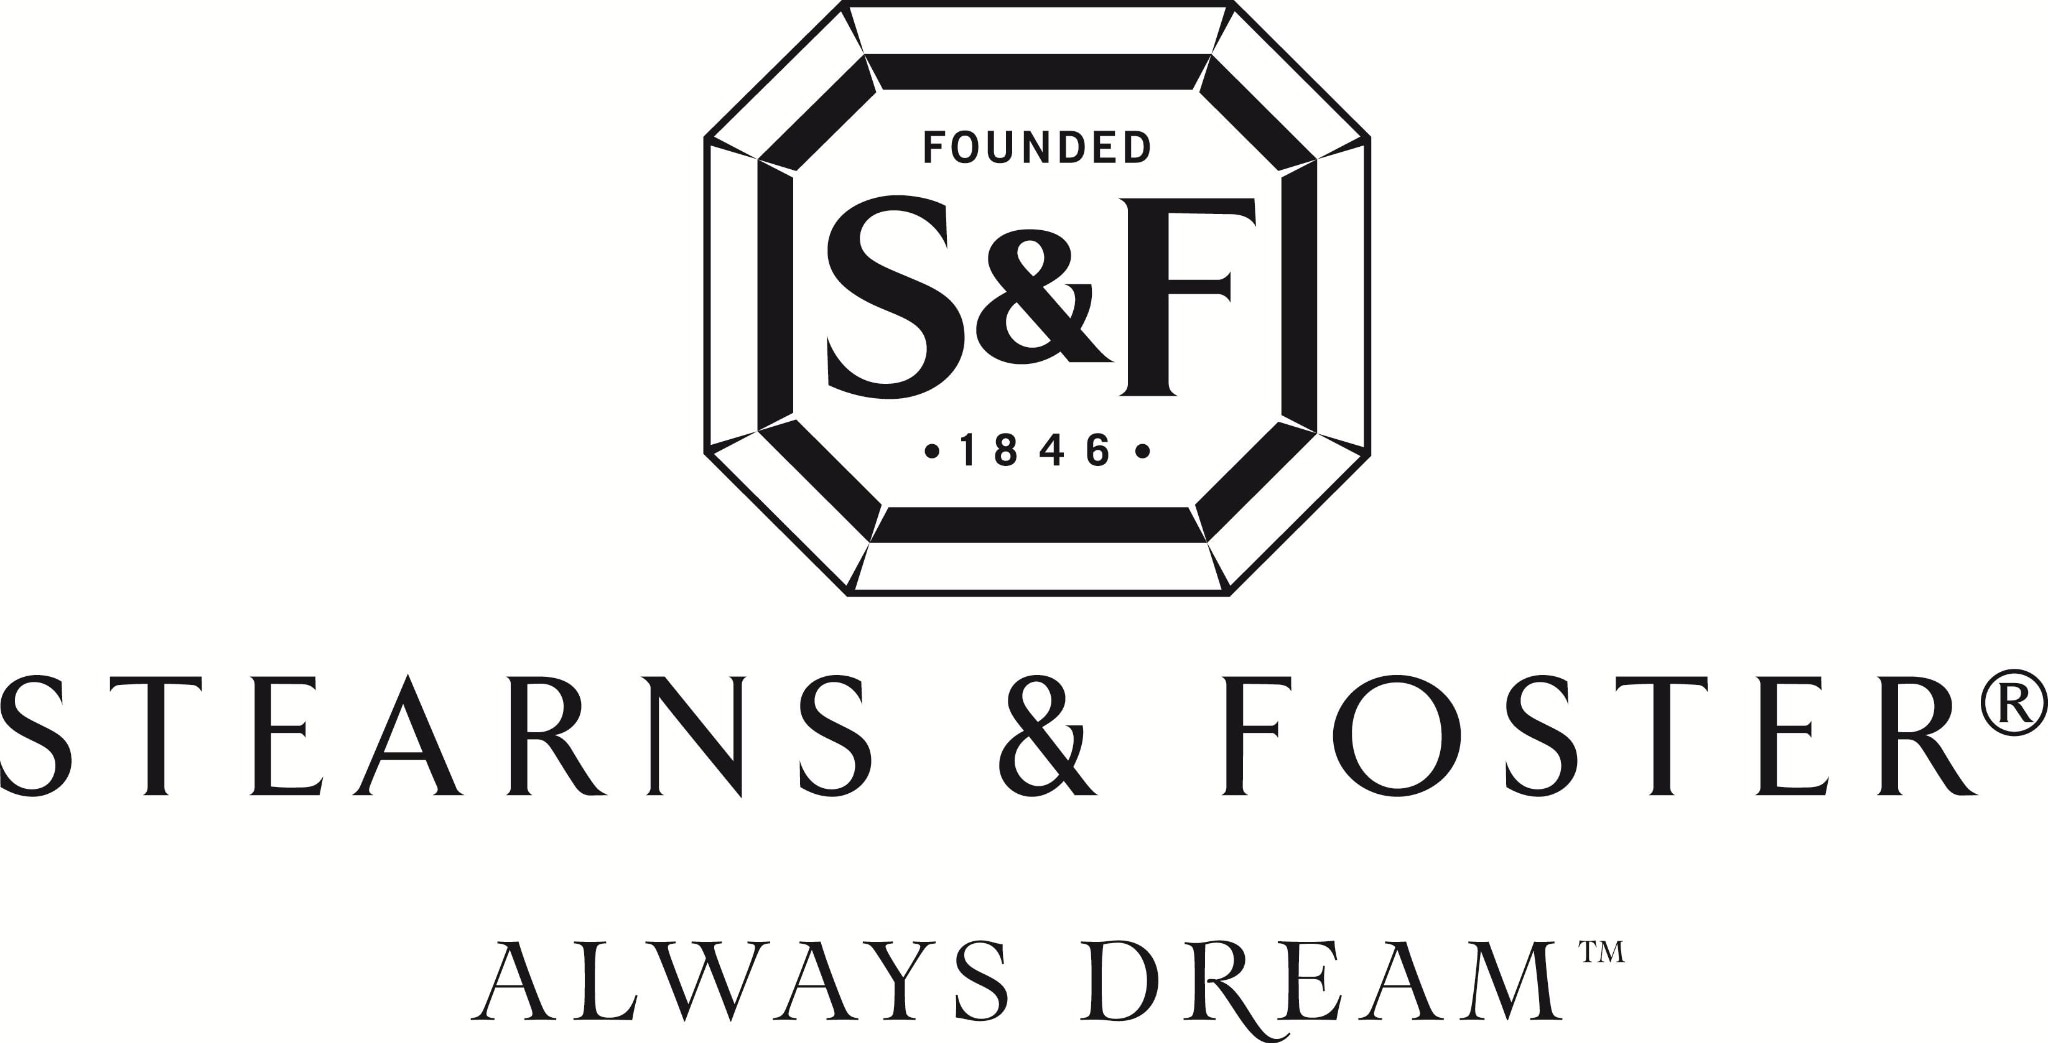 Stearns & Foster promo codes